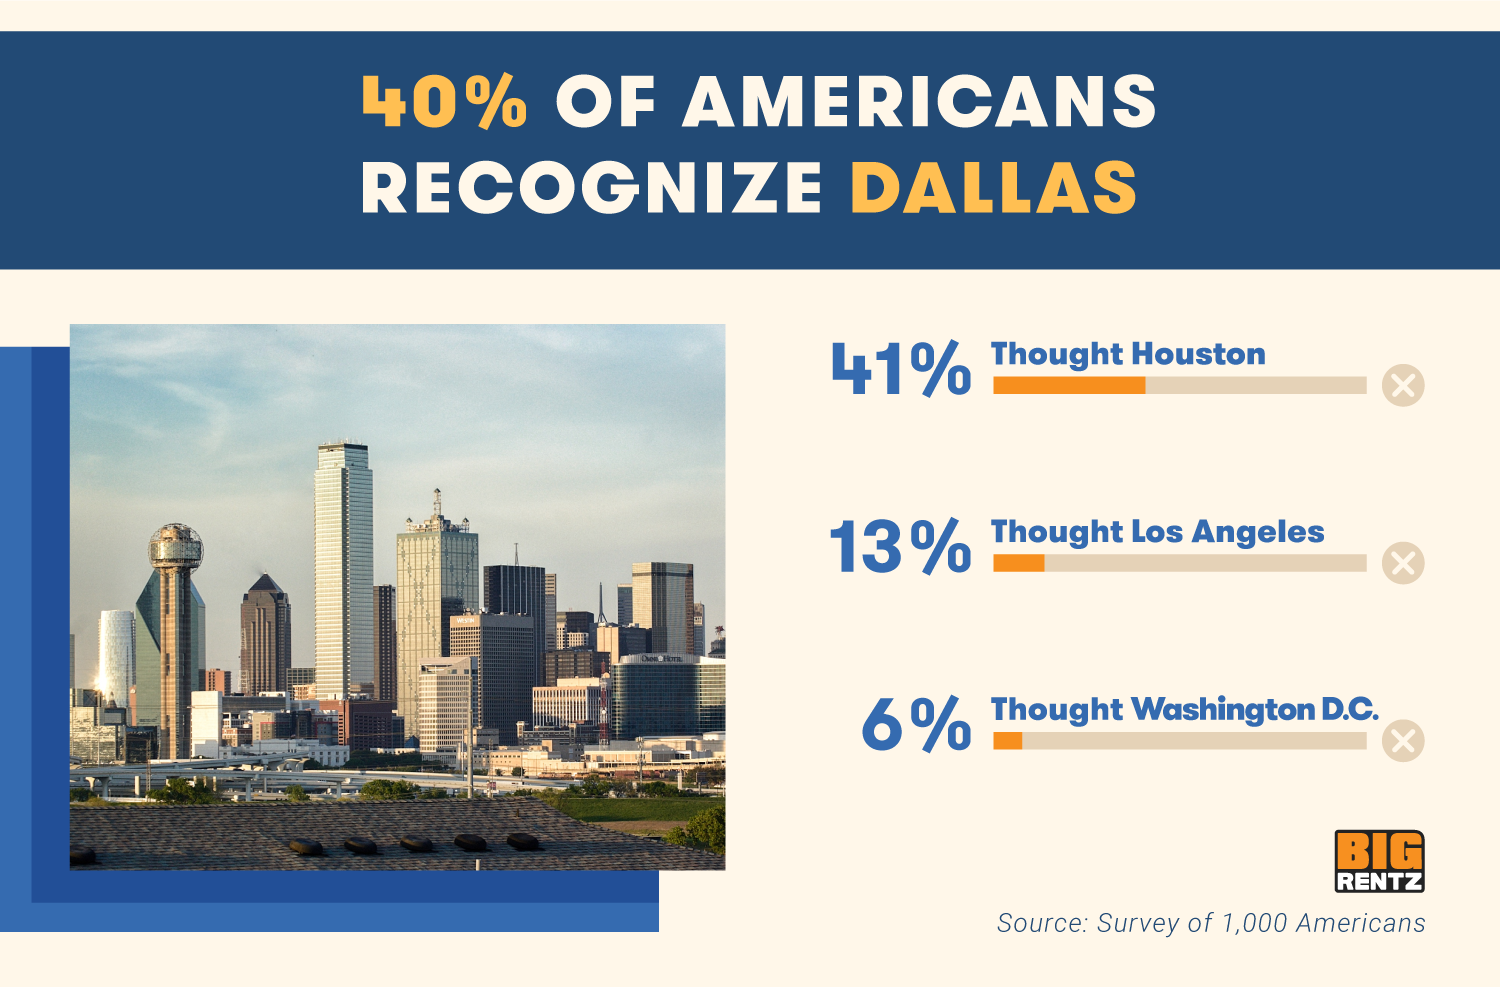 40% of Americans recognize Dallas. 41% thought Houston. 13% thought Los Angeles, 6% thought Washington D.C.